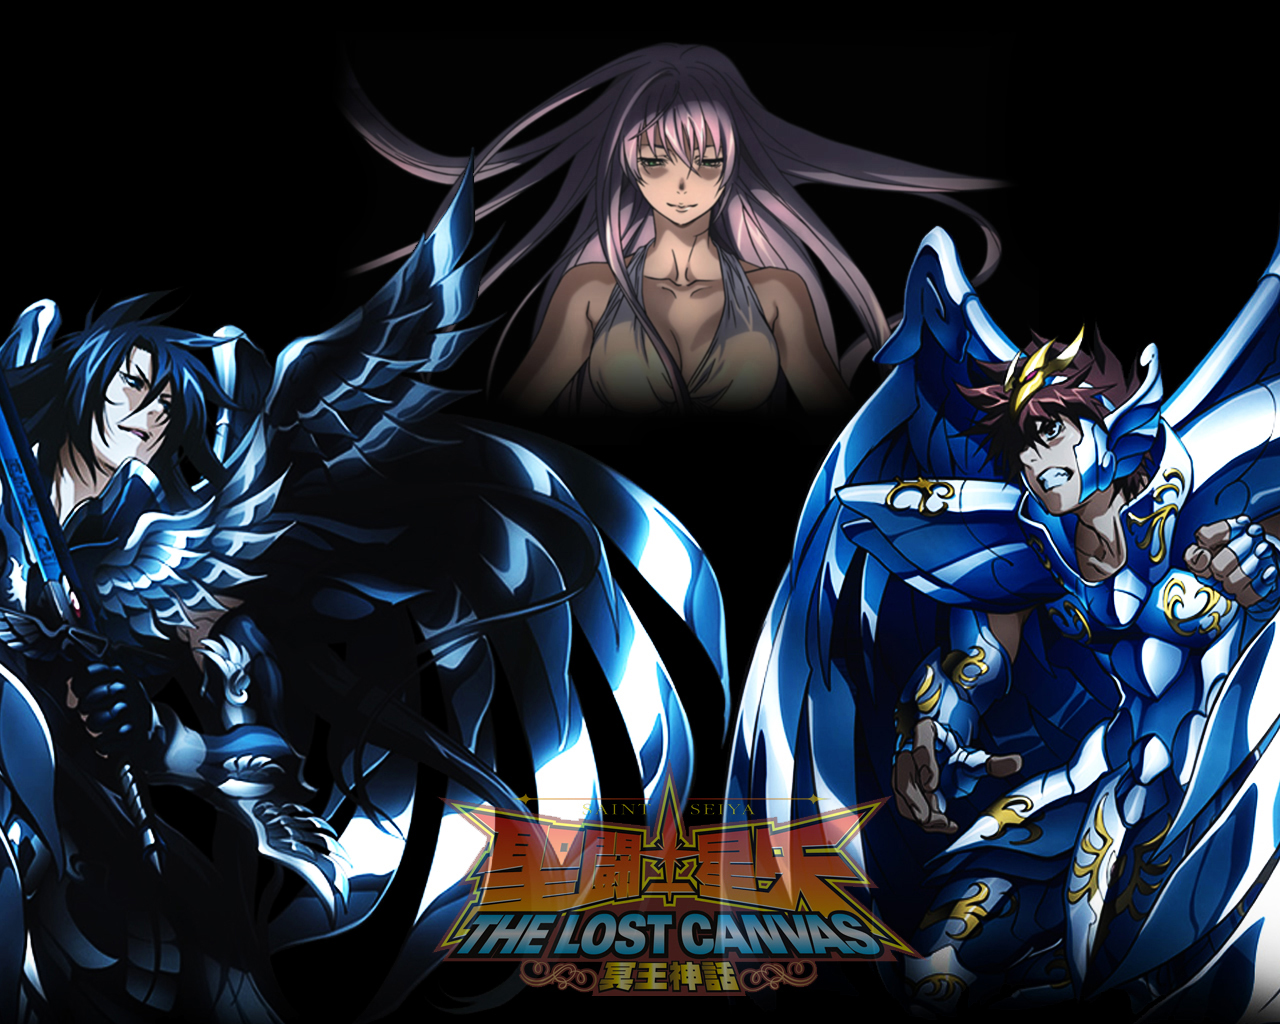 Saint Seiya: The Lost Canvas disponible en Netflix